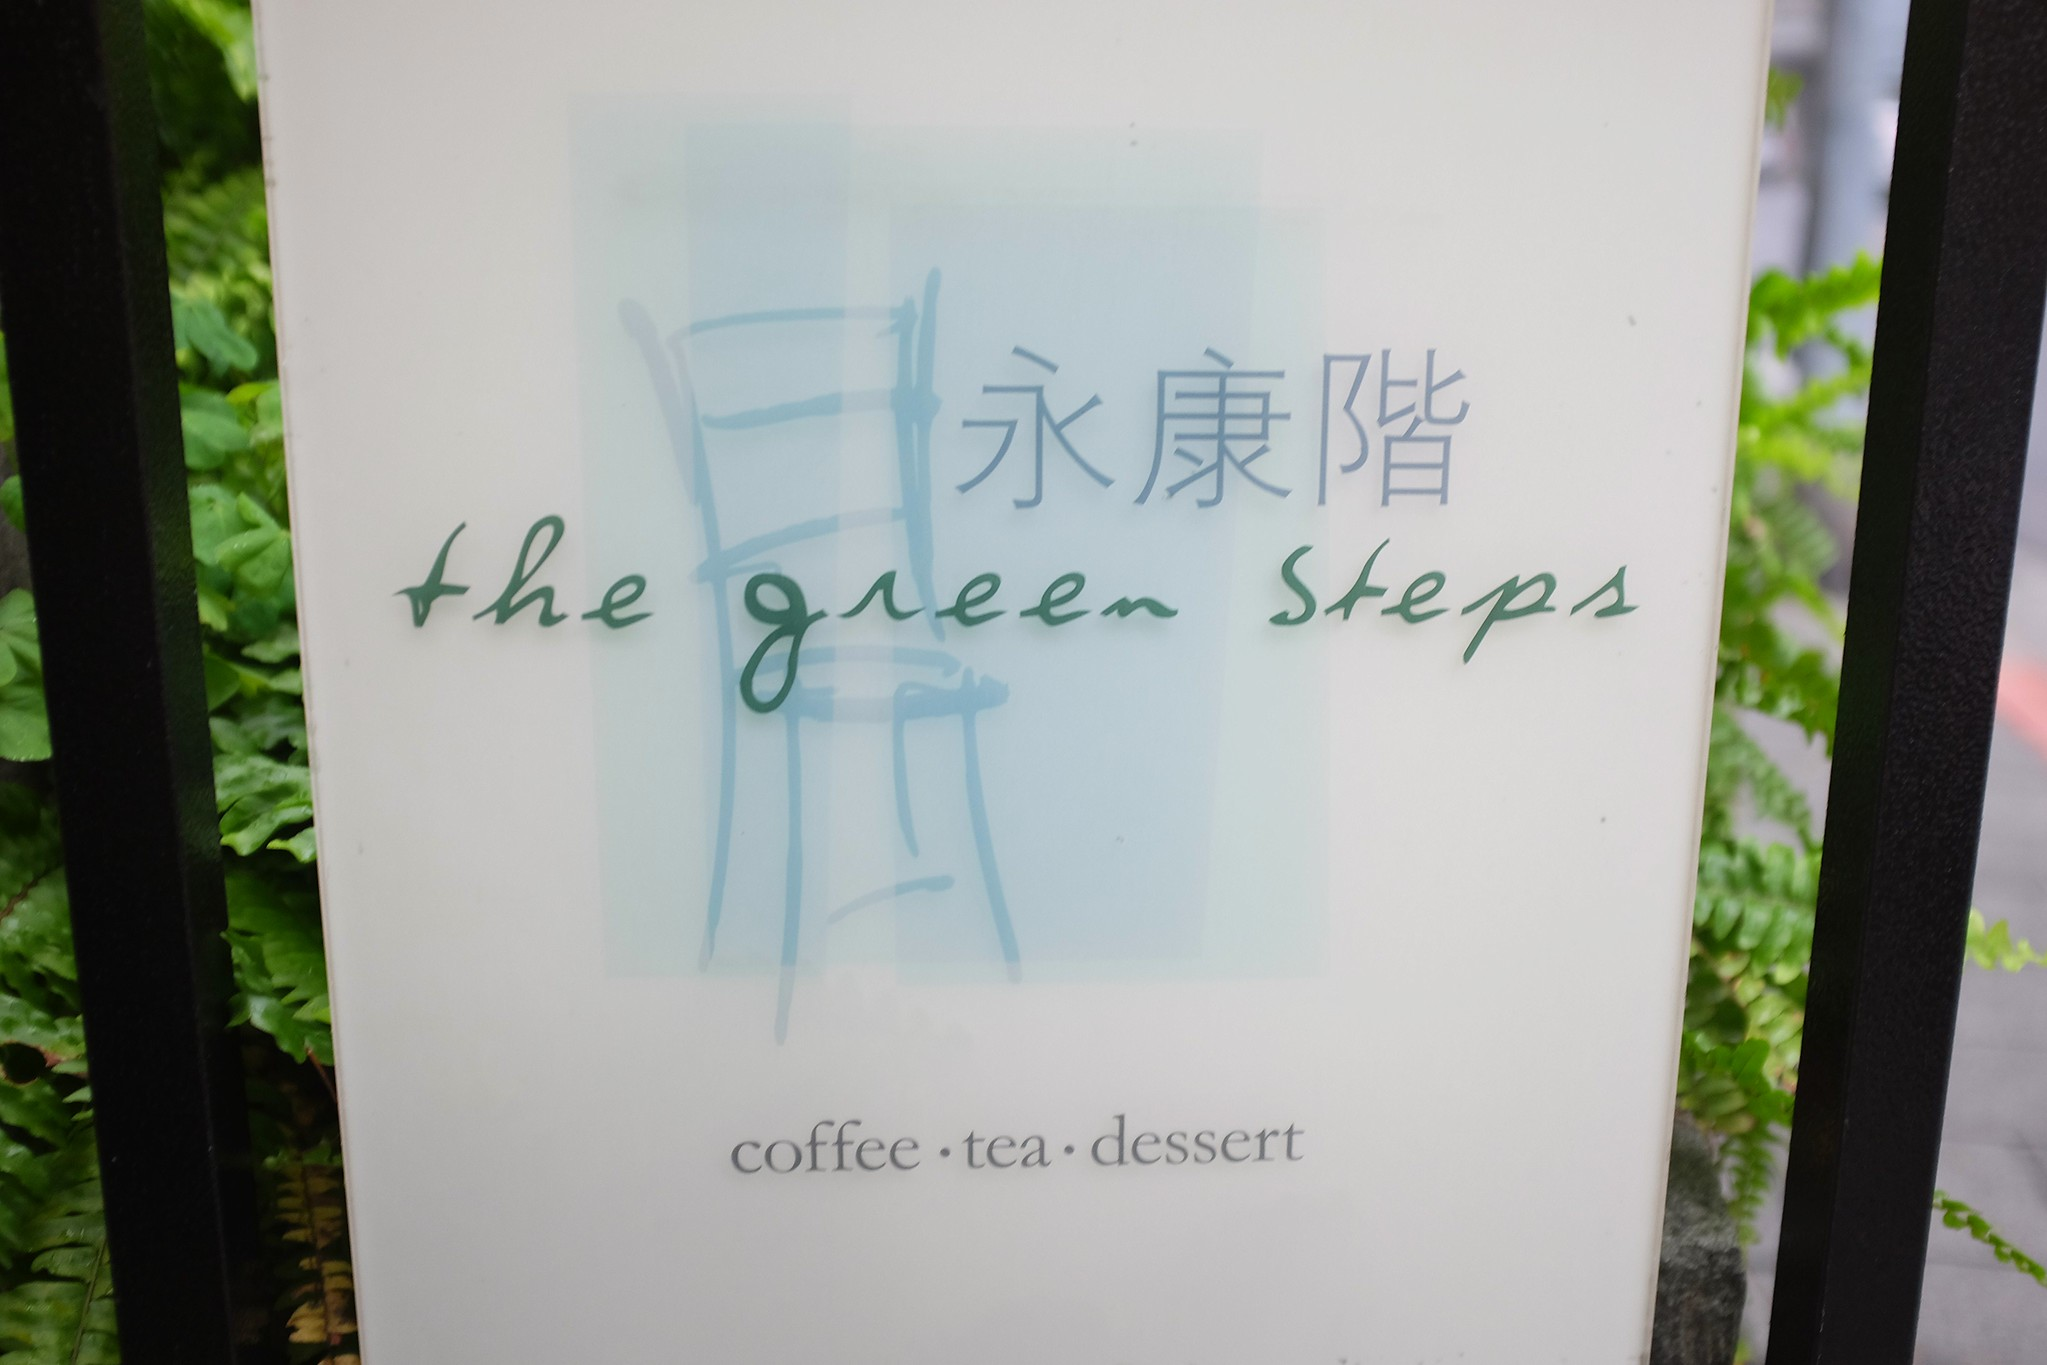 The green steps 永康階 1